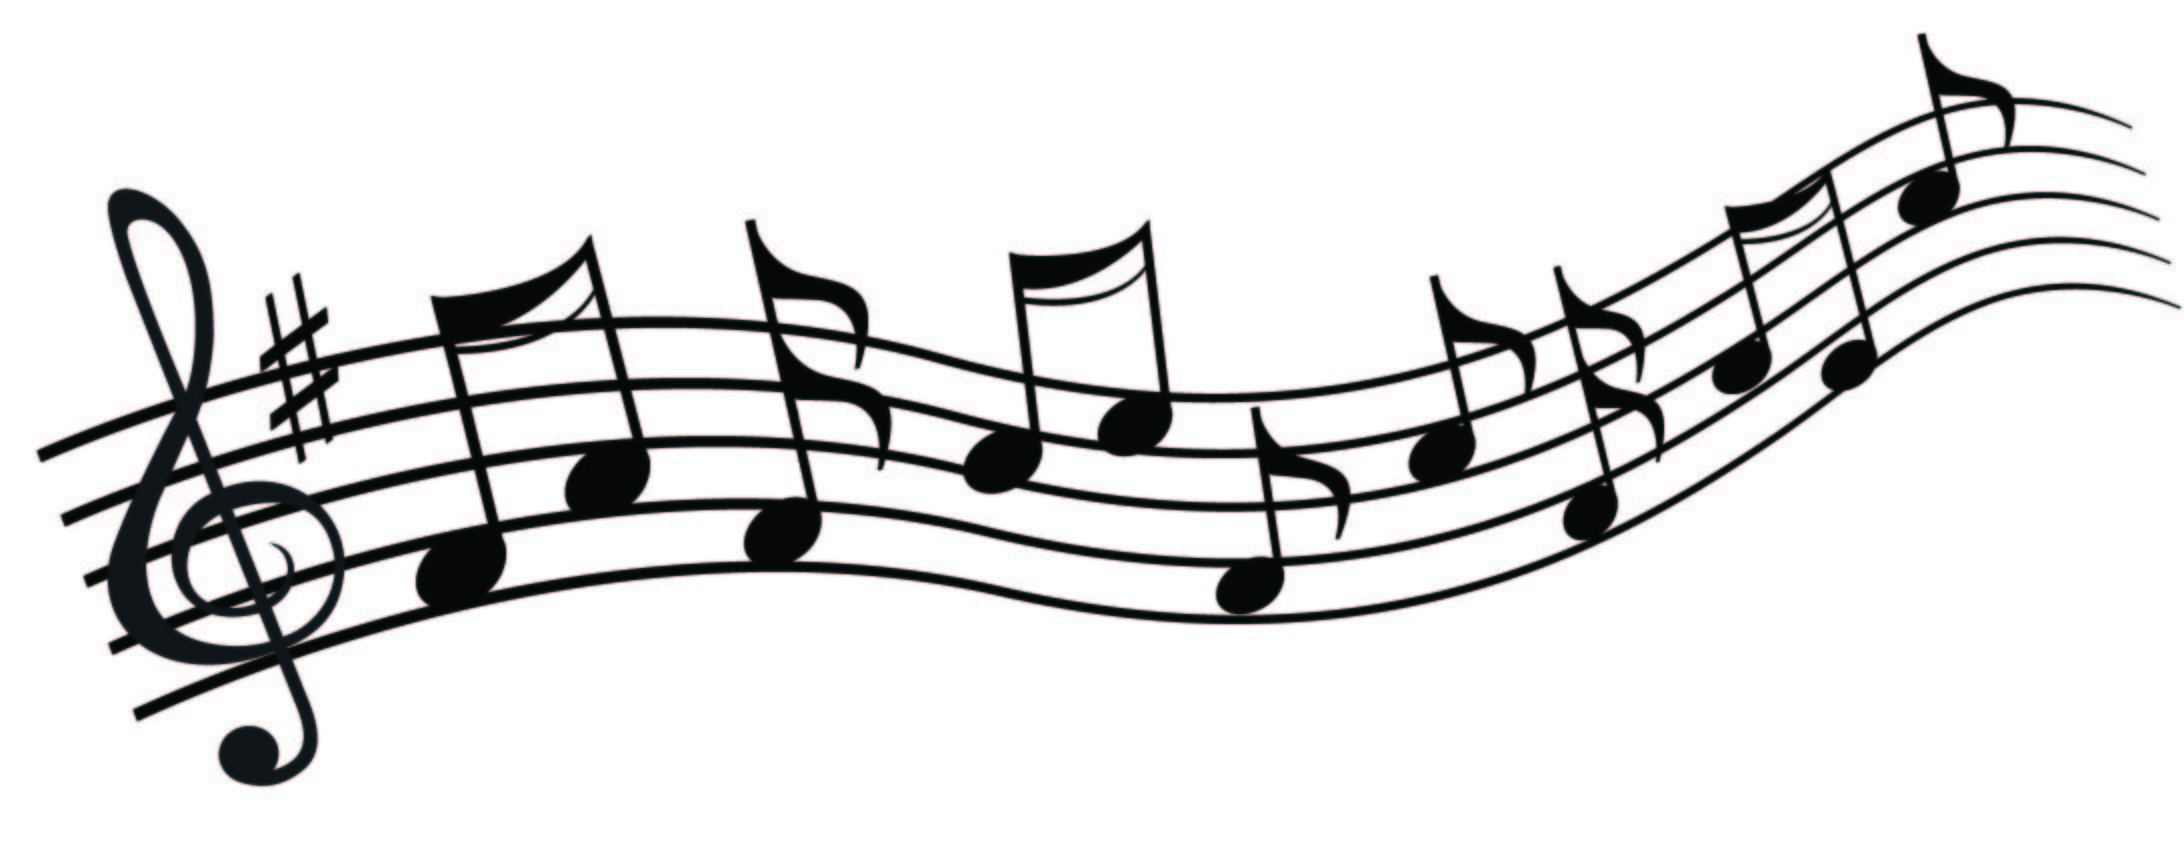 2184x843 Music Notes Clipart Winter